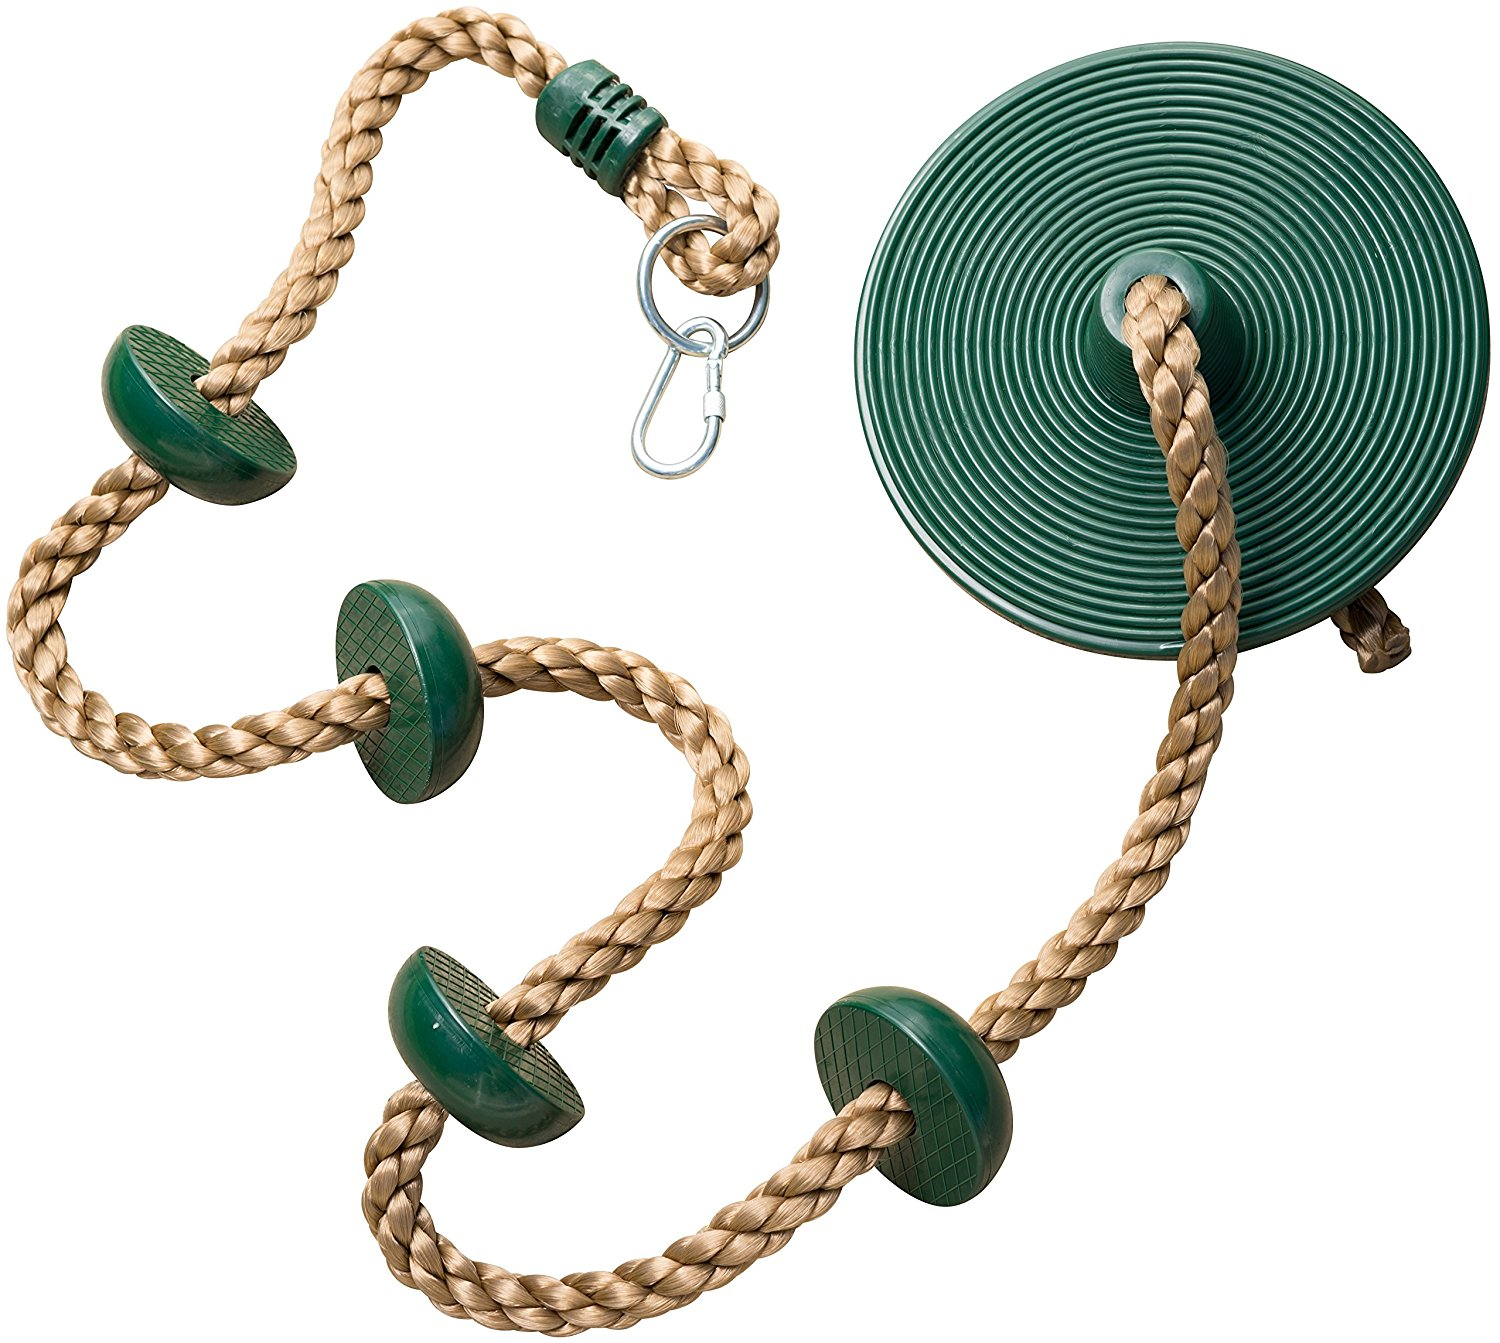 Jungle Gym Kingdom Climbing Rope with Platforms and Disc Swing Seat - Swing Set Accessories